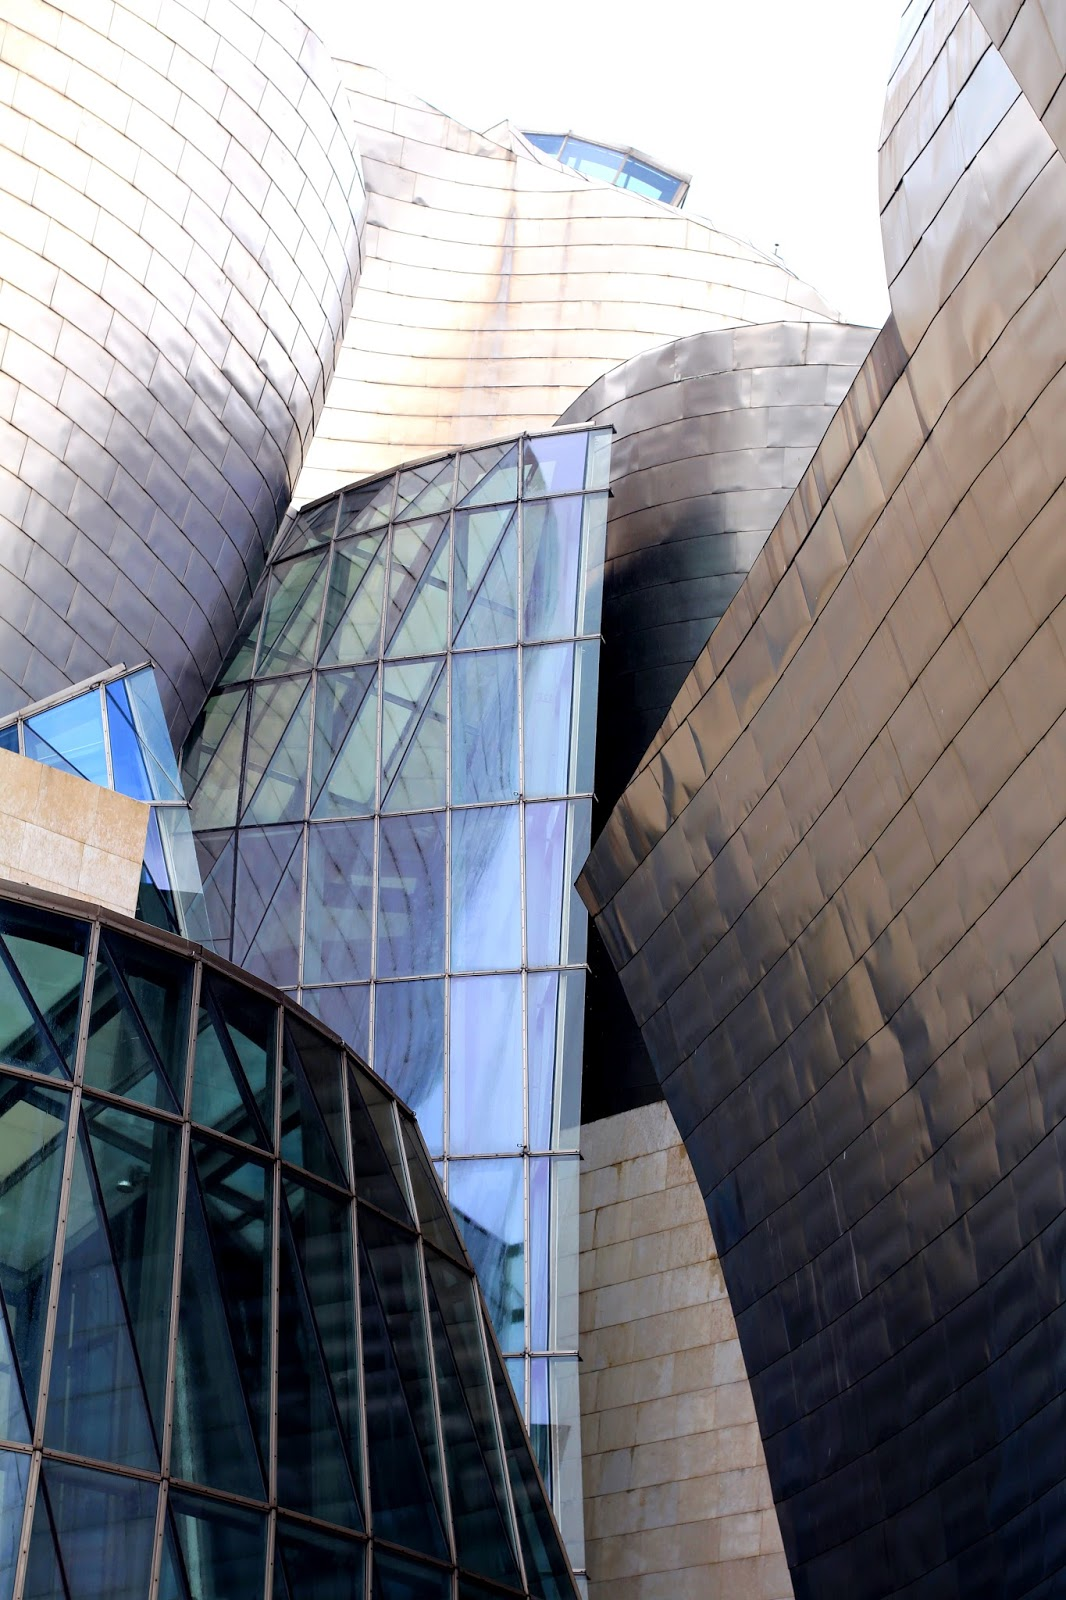 Guggenheim exterior in Bilbao, Spain - London travel blog